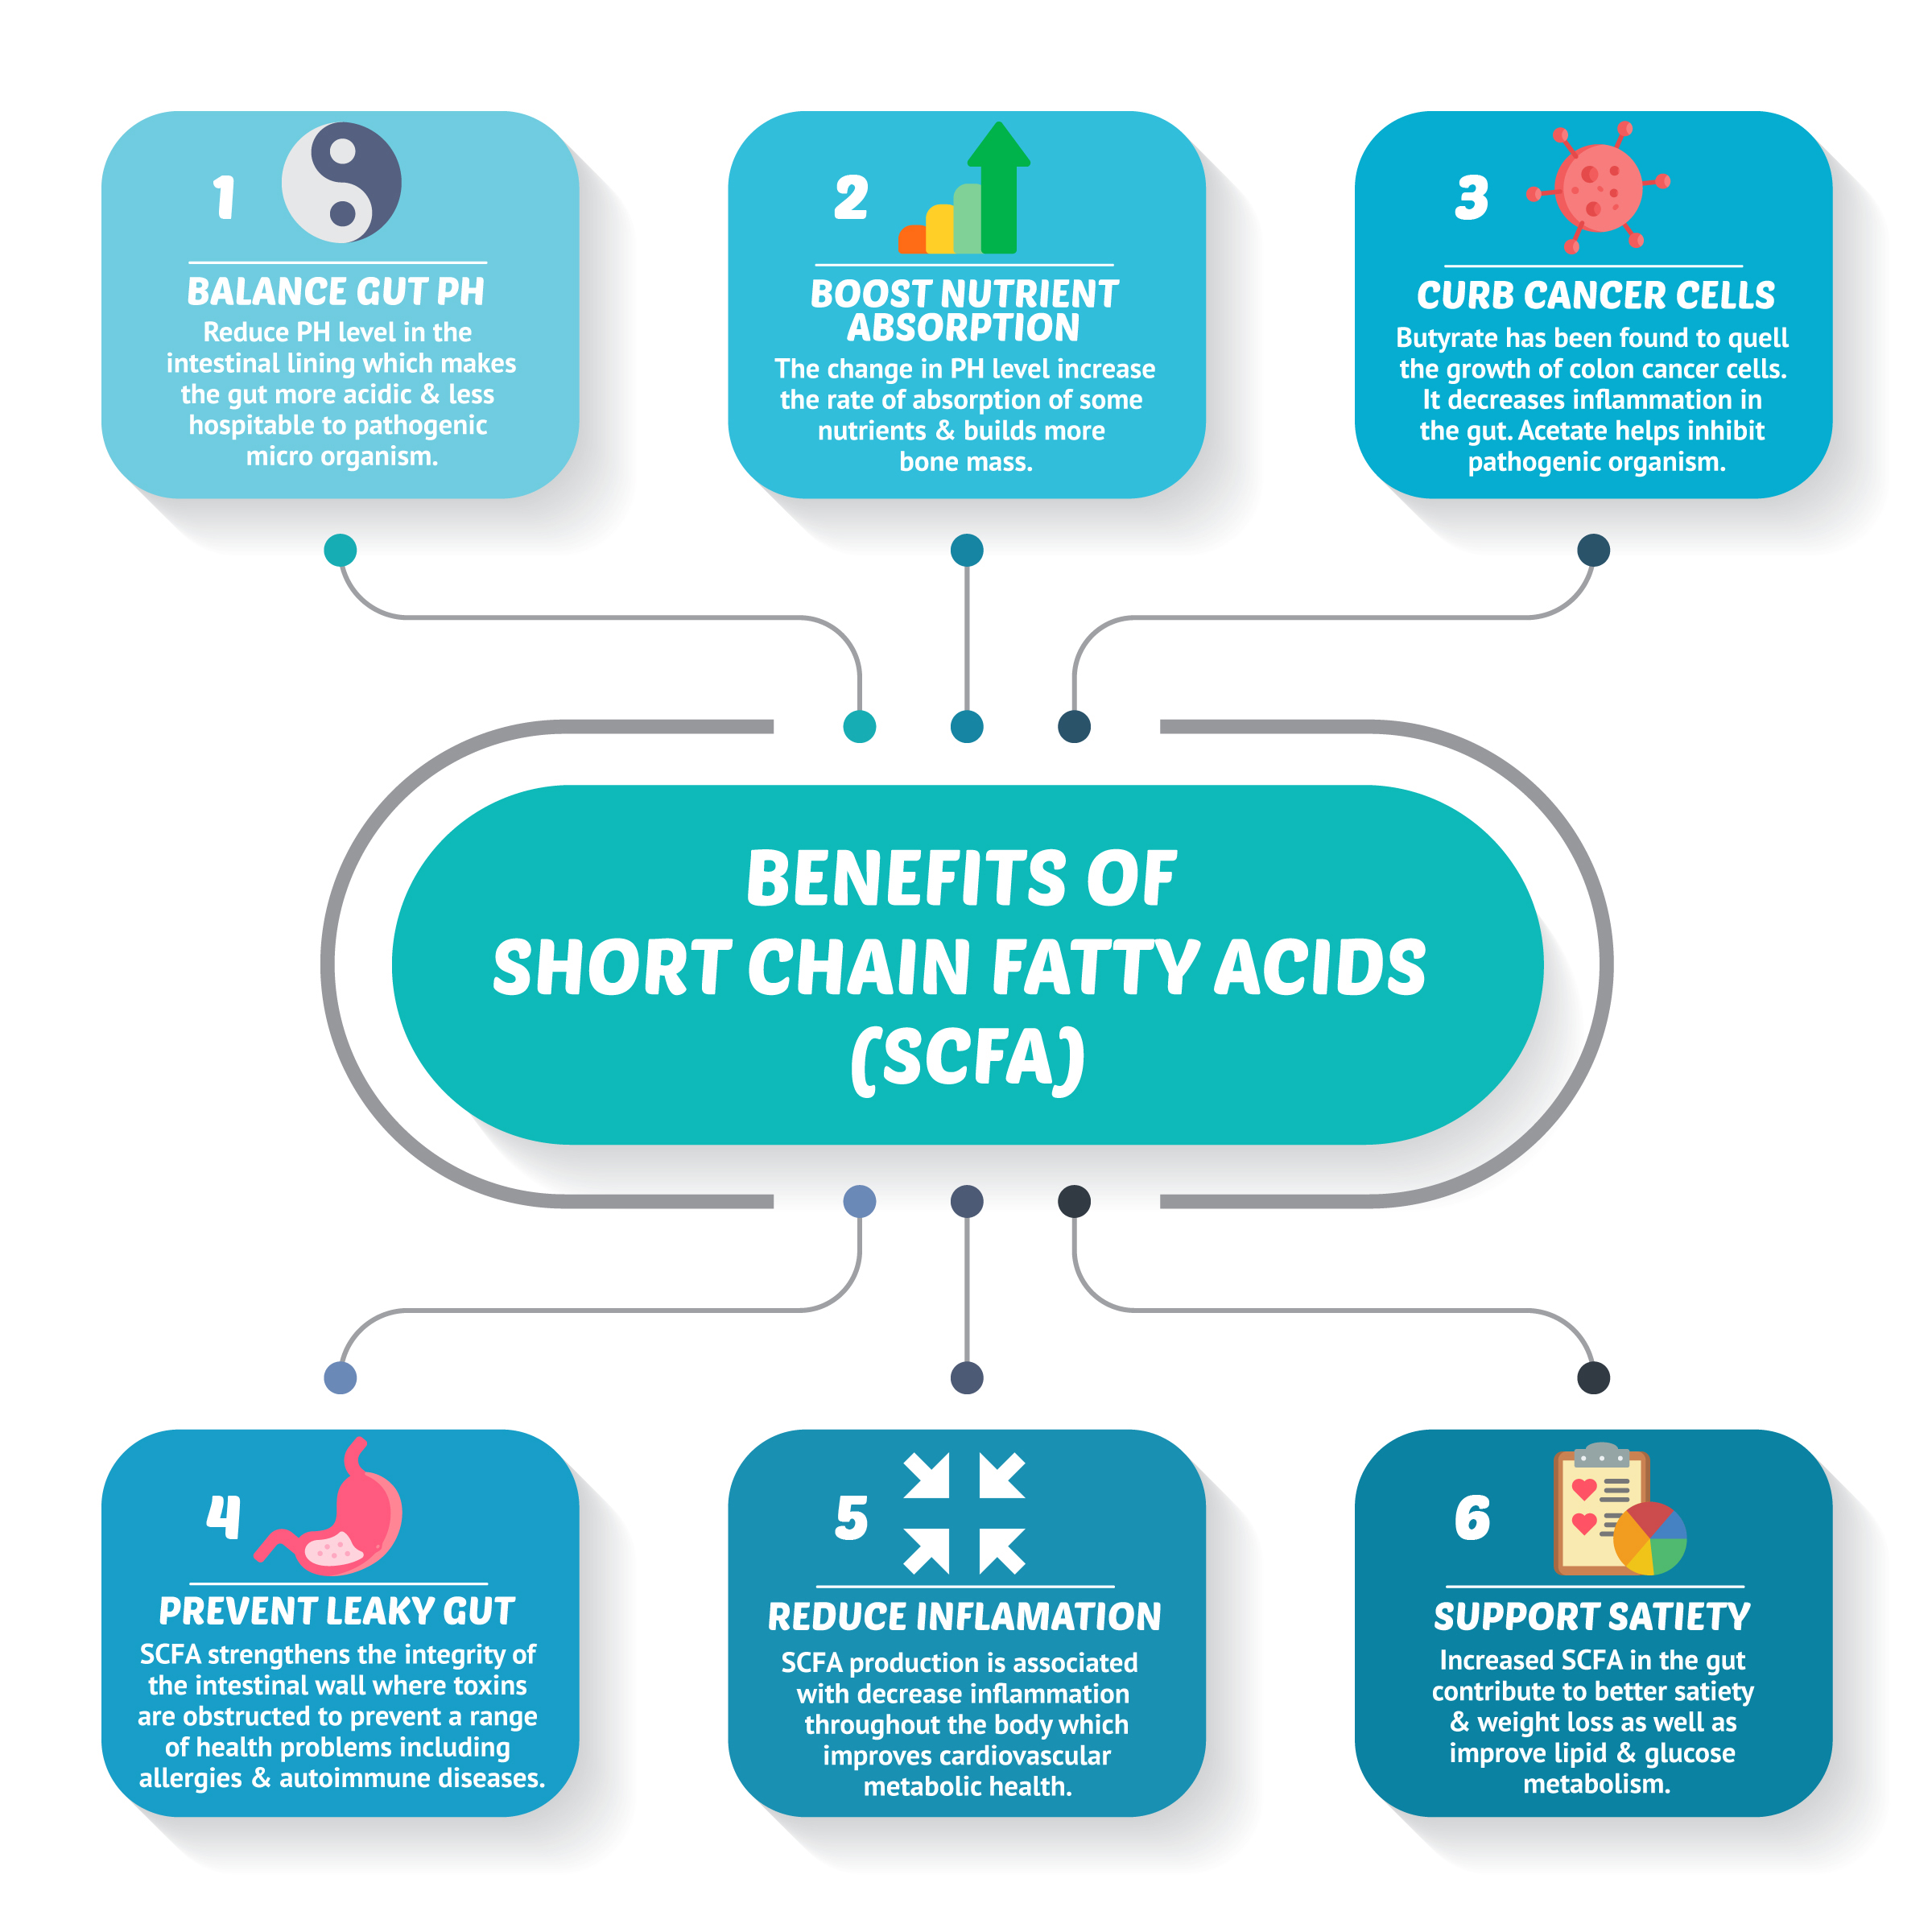 benefis of short chain fatty acids